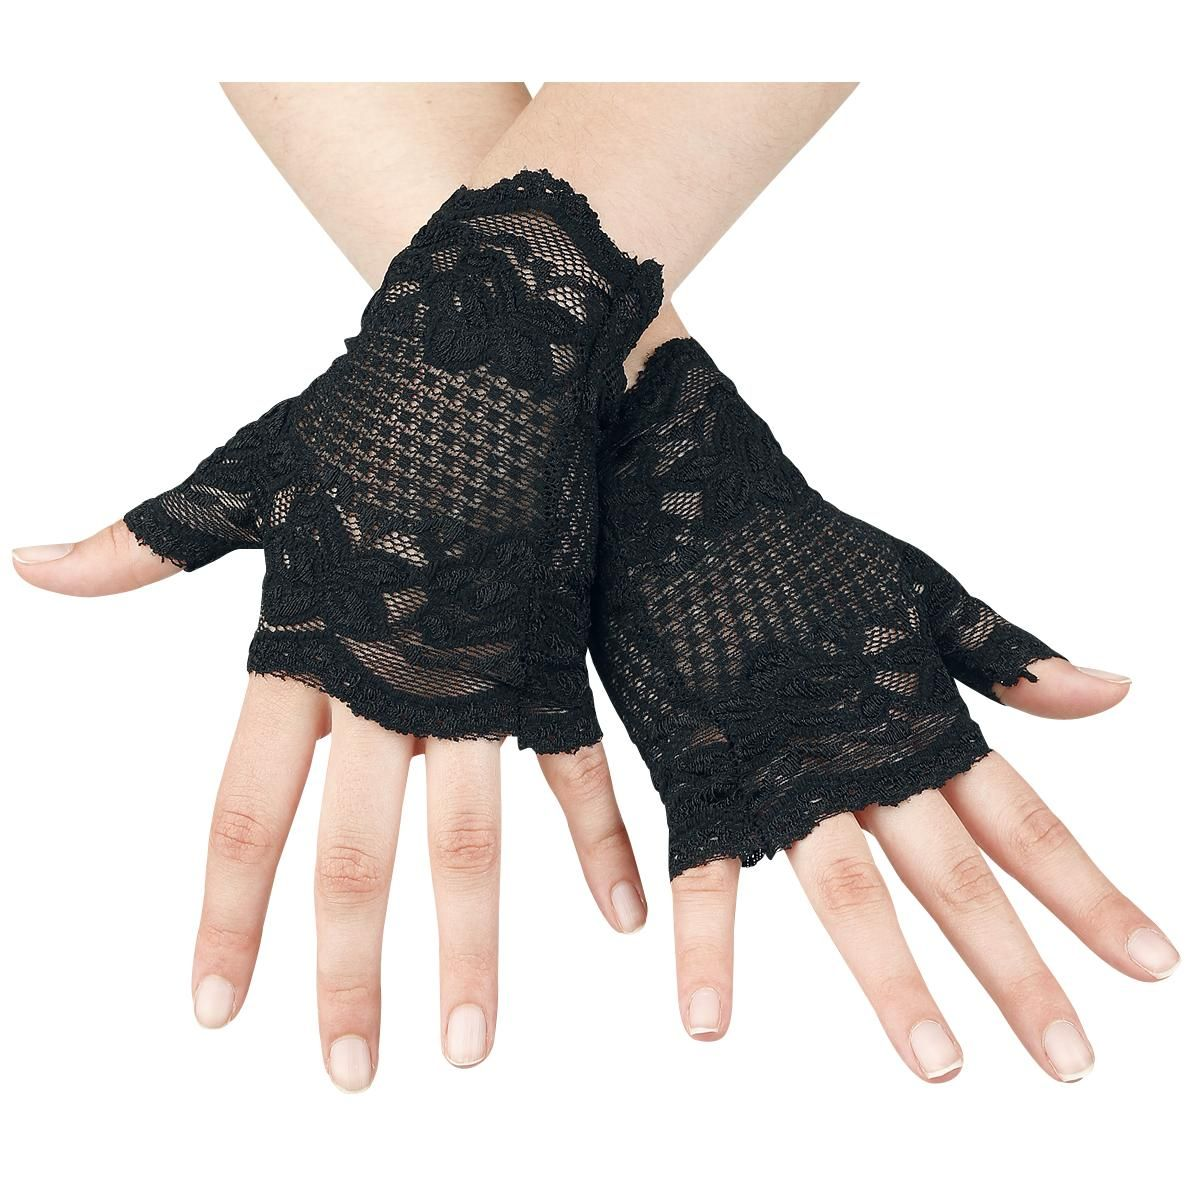 Black Lace Gloves - Queen Of Darkness